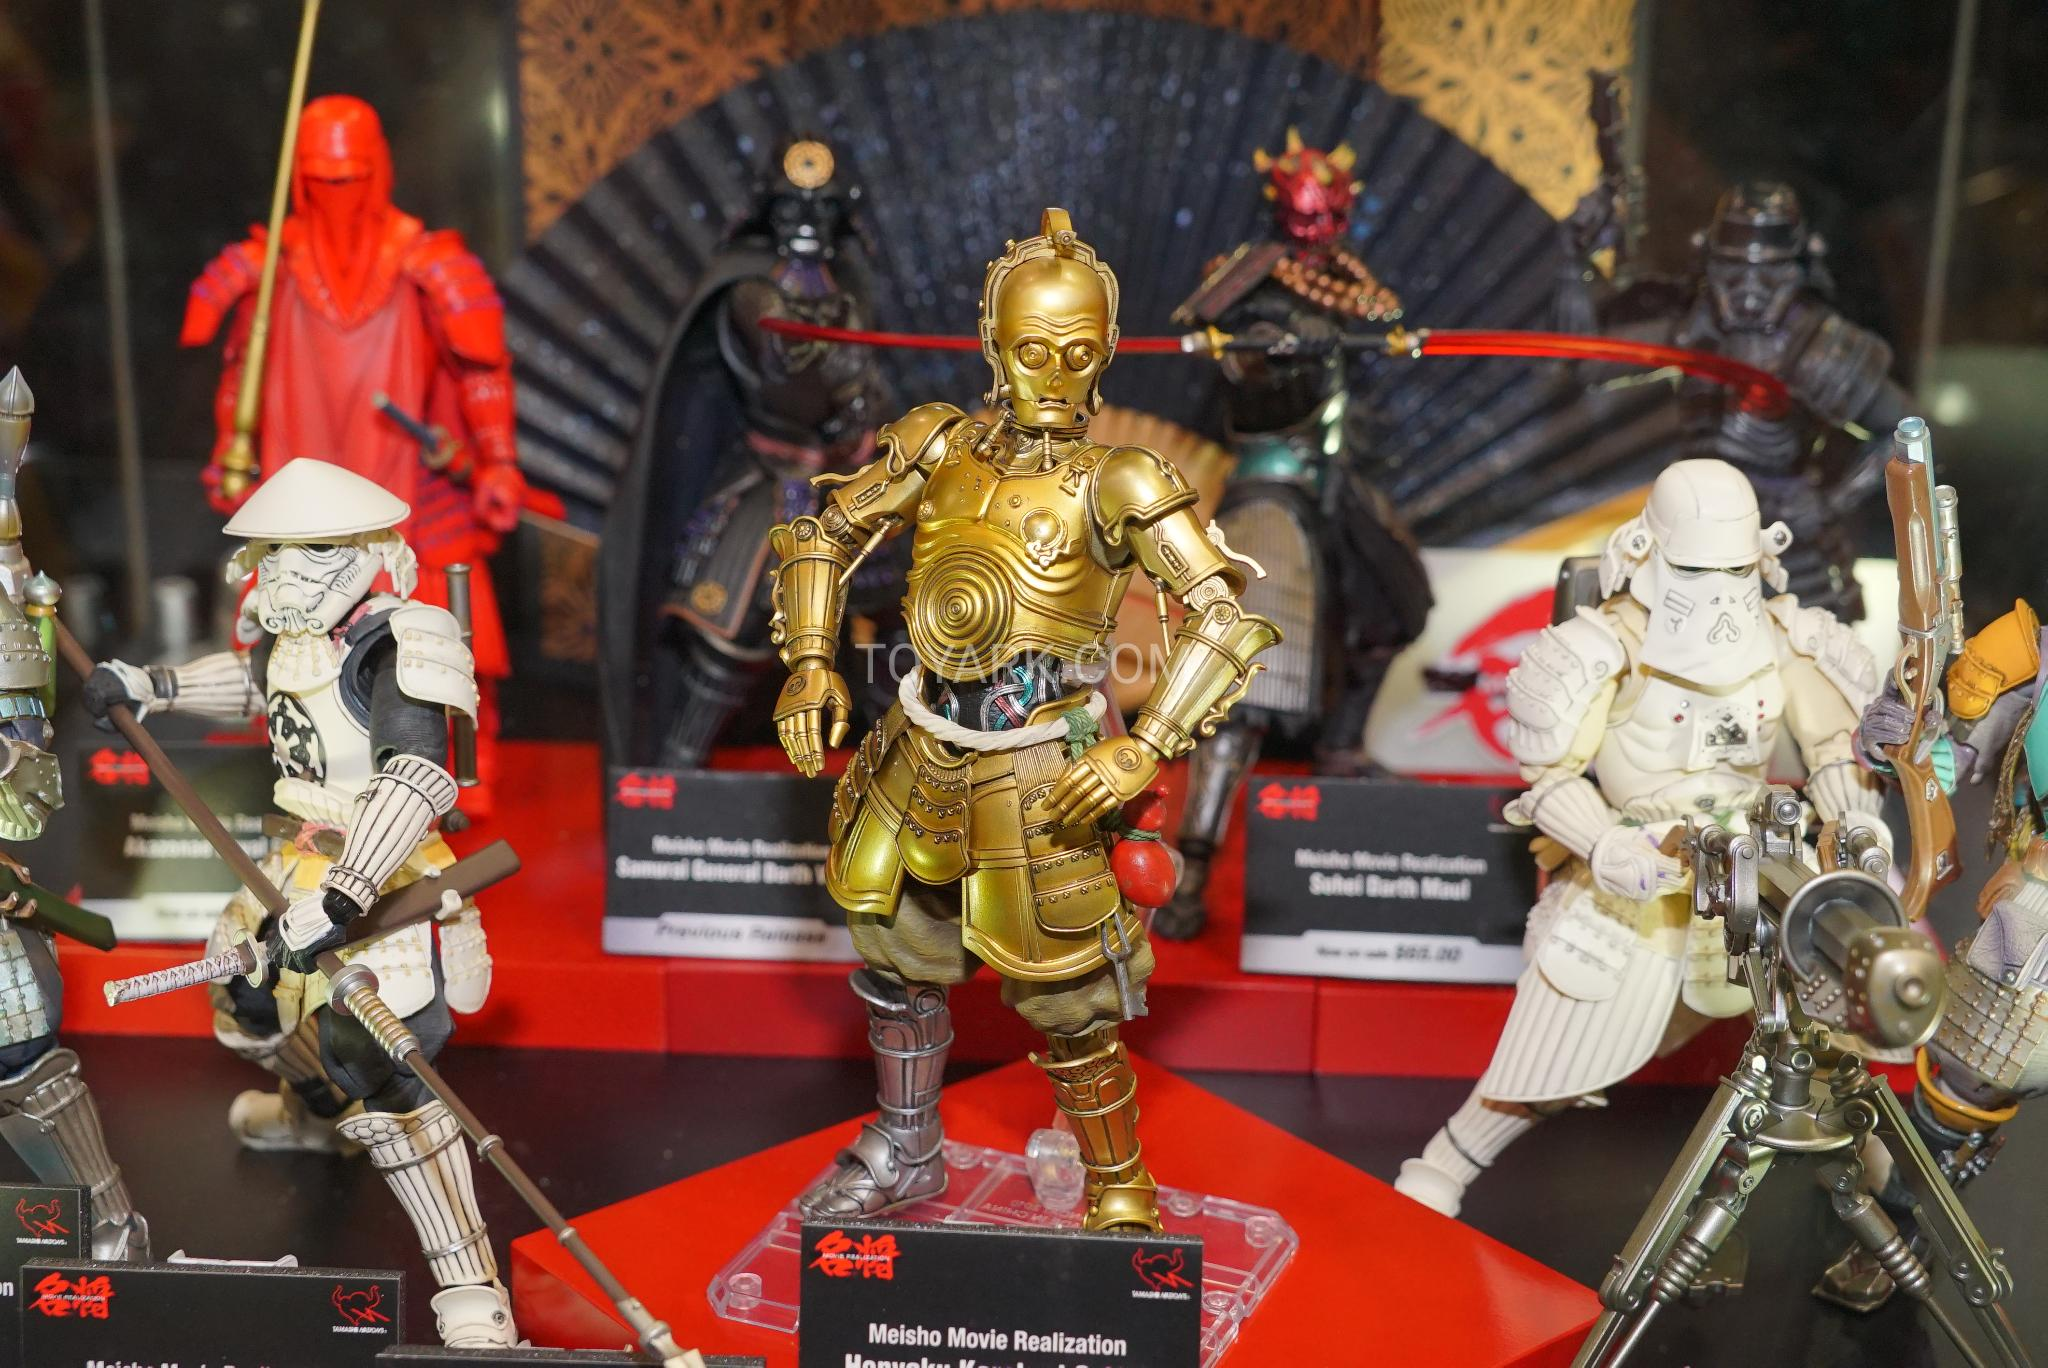 NEW YORK COMIC CON 2018 NYCC-2018-Tamashii-Nations-Star-Wars-002